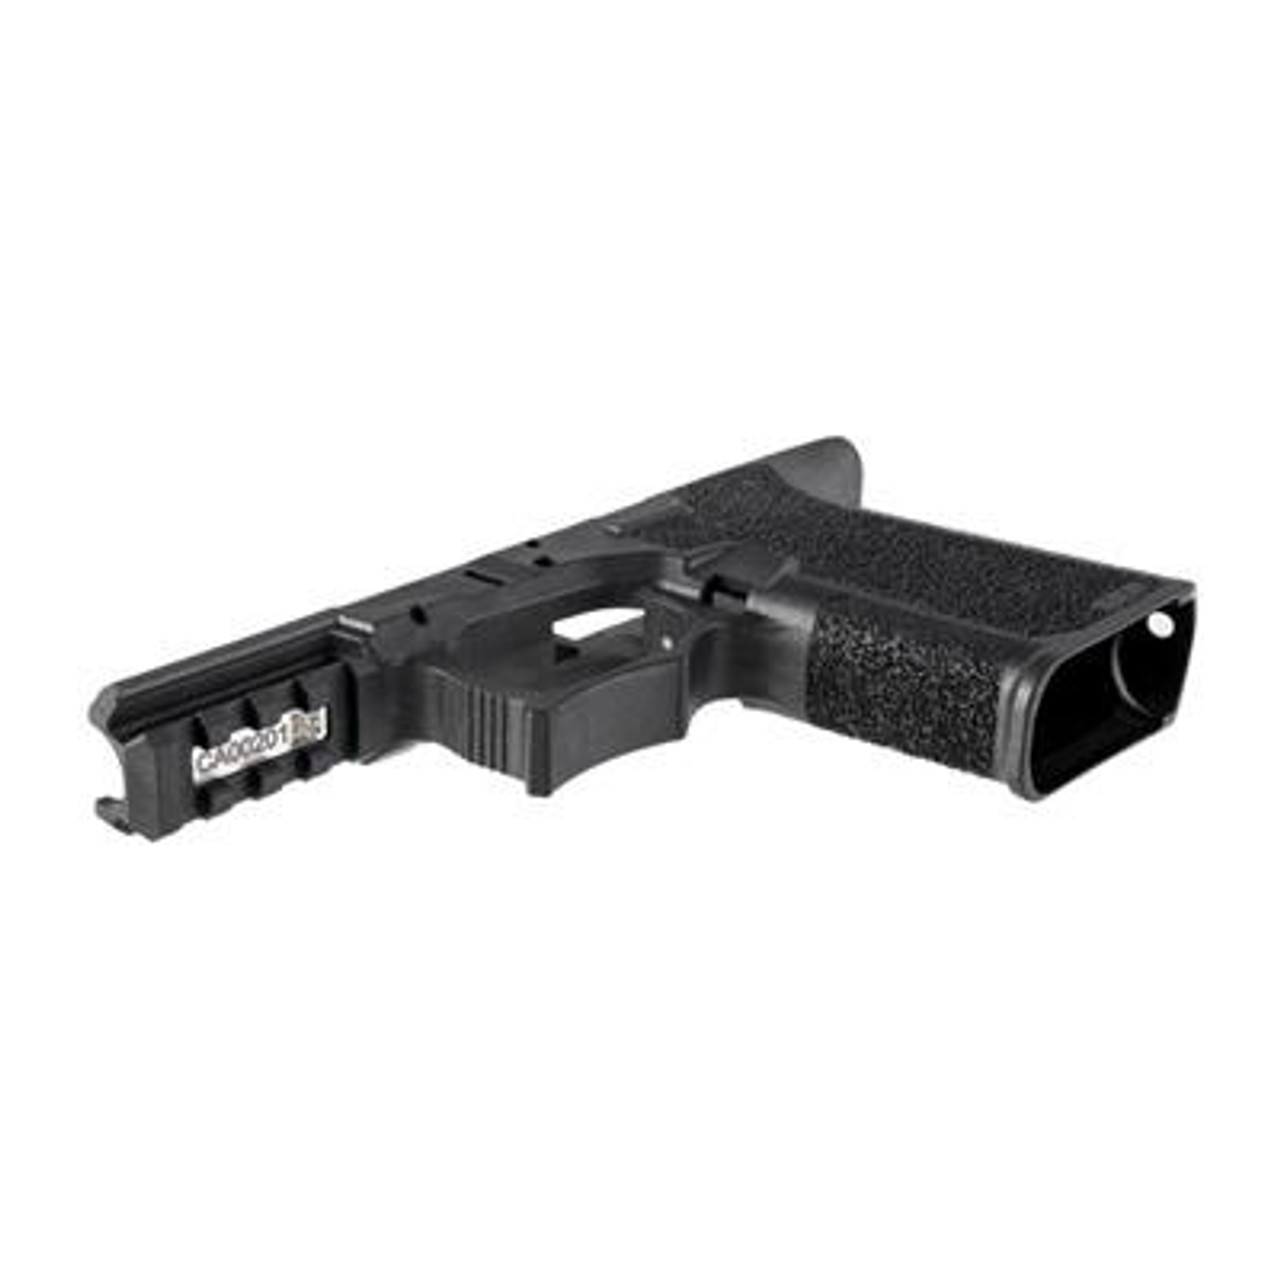 Polymer80 PFC9 Serialized Glock 19/23 Compact Frame Textured